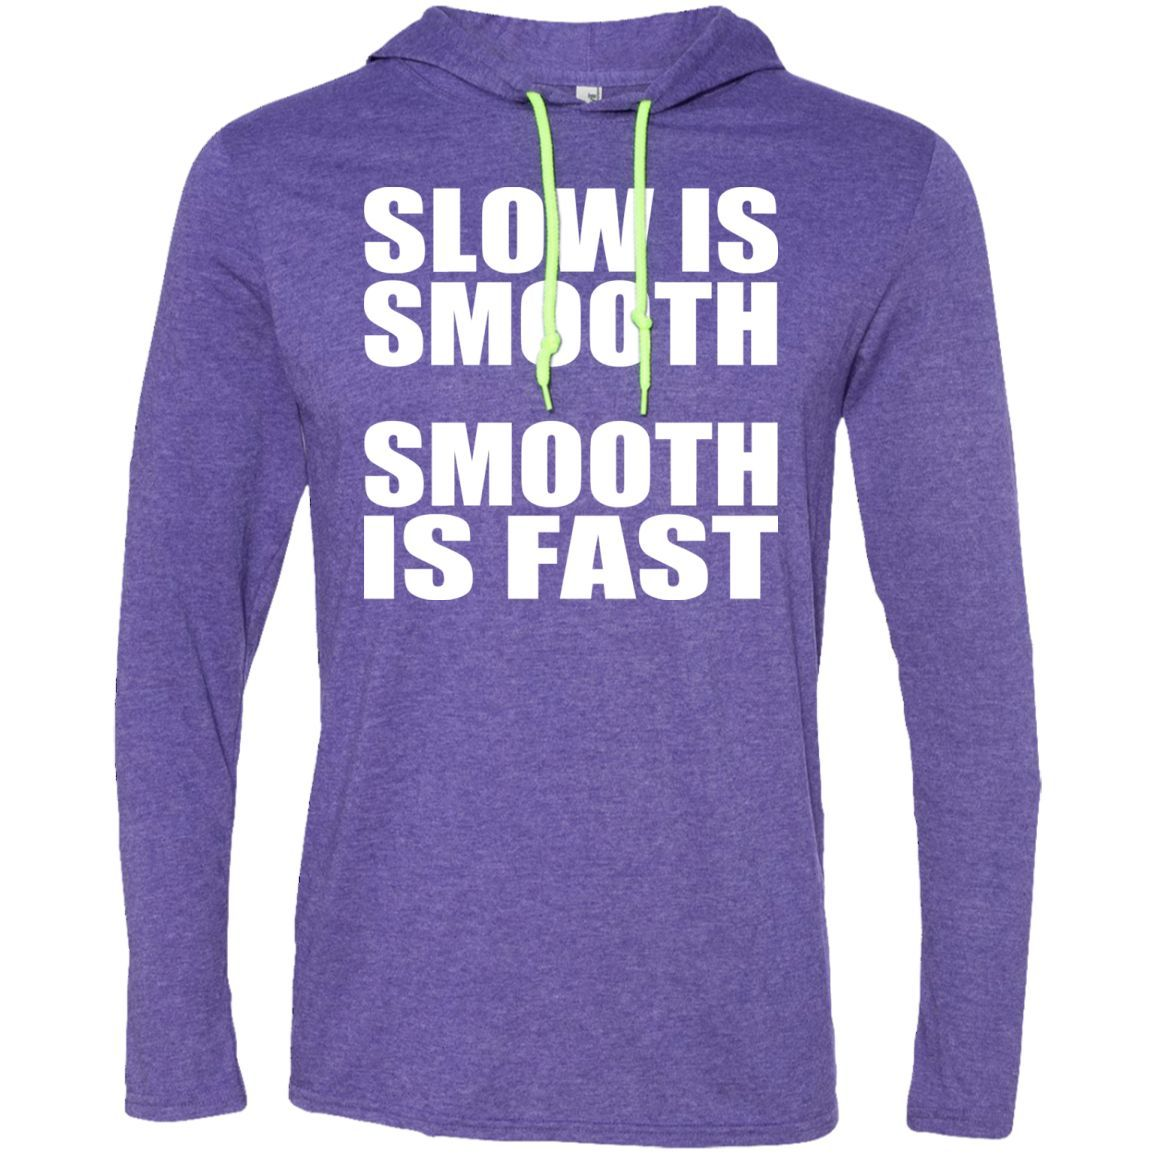 Slow Is Smooth Smooth Is Fast Tee Shirt Hoodies